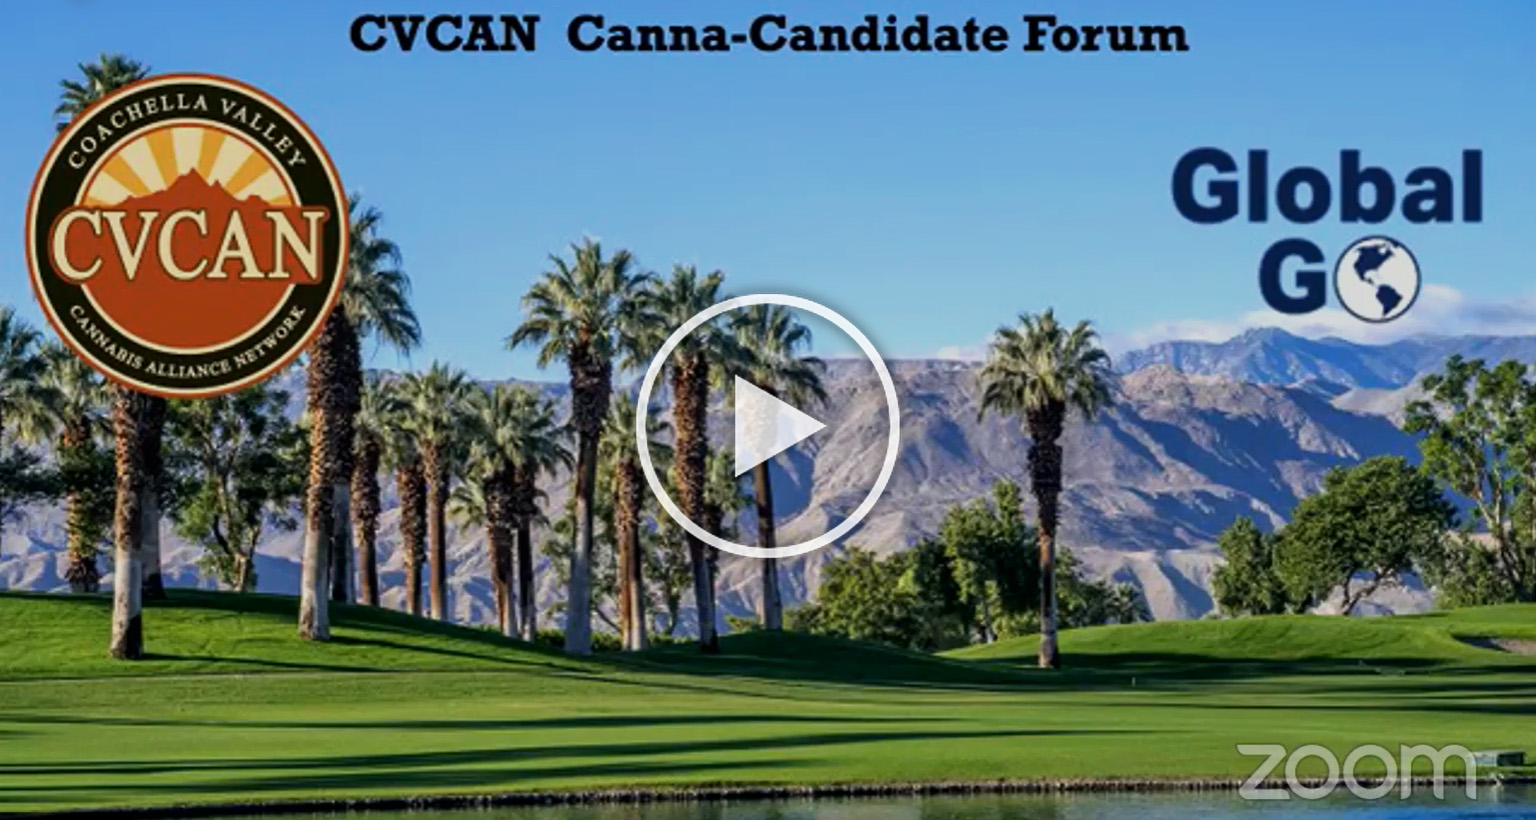 mountain and trees view for cvcan canna candidate forum